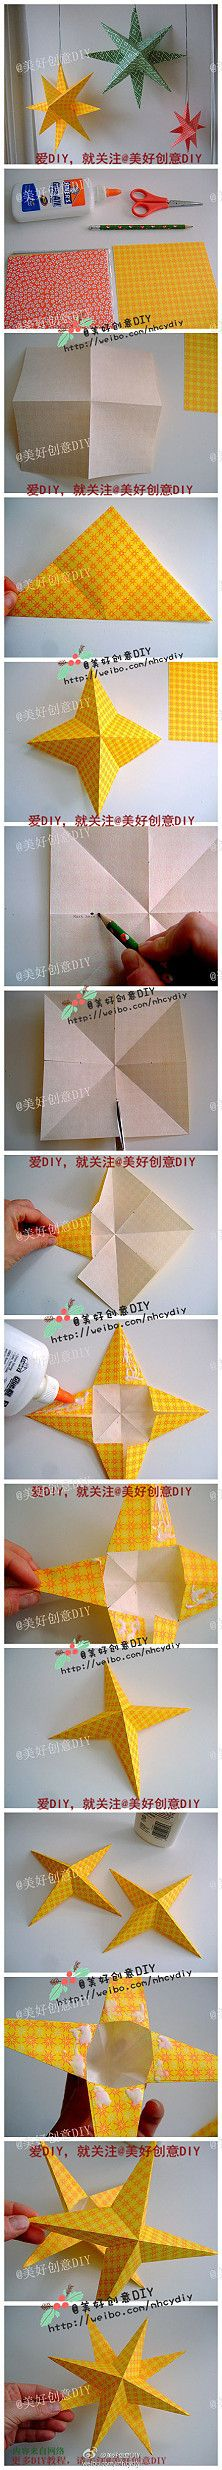 Star origami-maybe do some in the opalescence or holographic paper. Diy Projects To Try, Crafts To Do, Craft Projects, Crafts For Kids, Diy Crafts, Recycling Projects, Origami Paper, Diy Paper, Paper Crafting